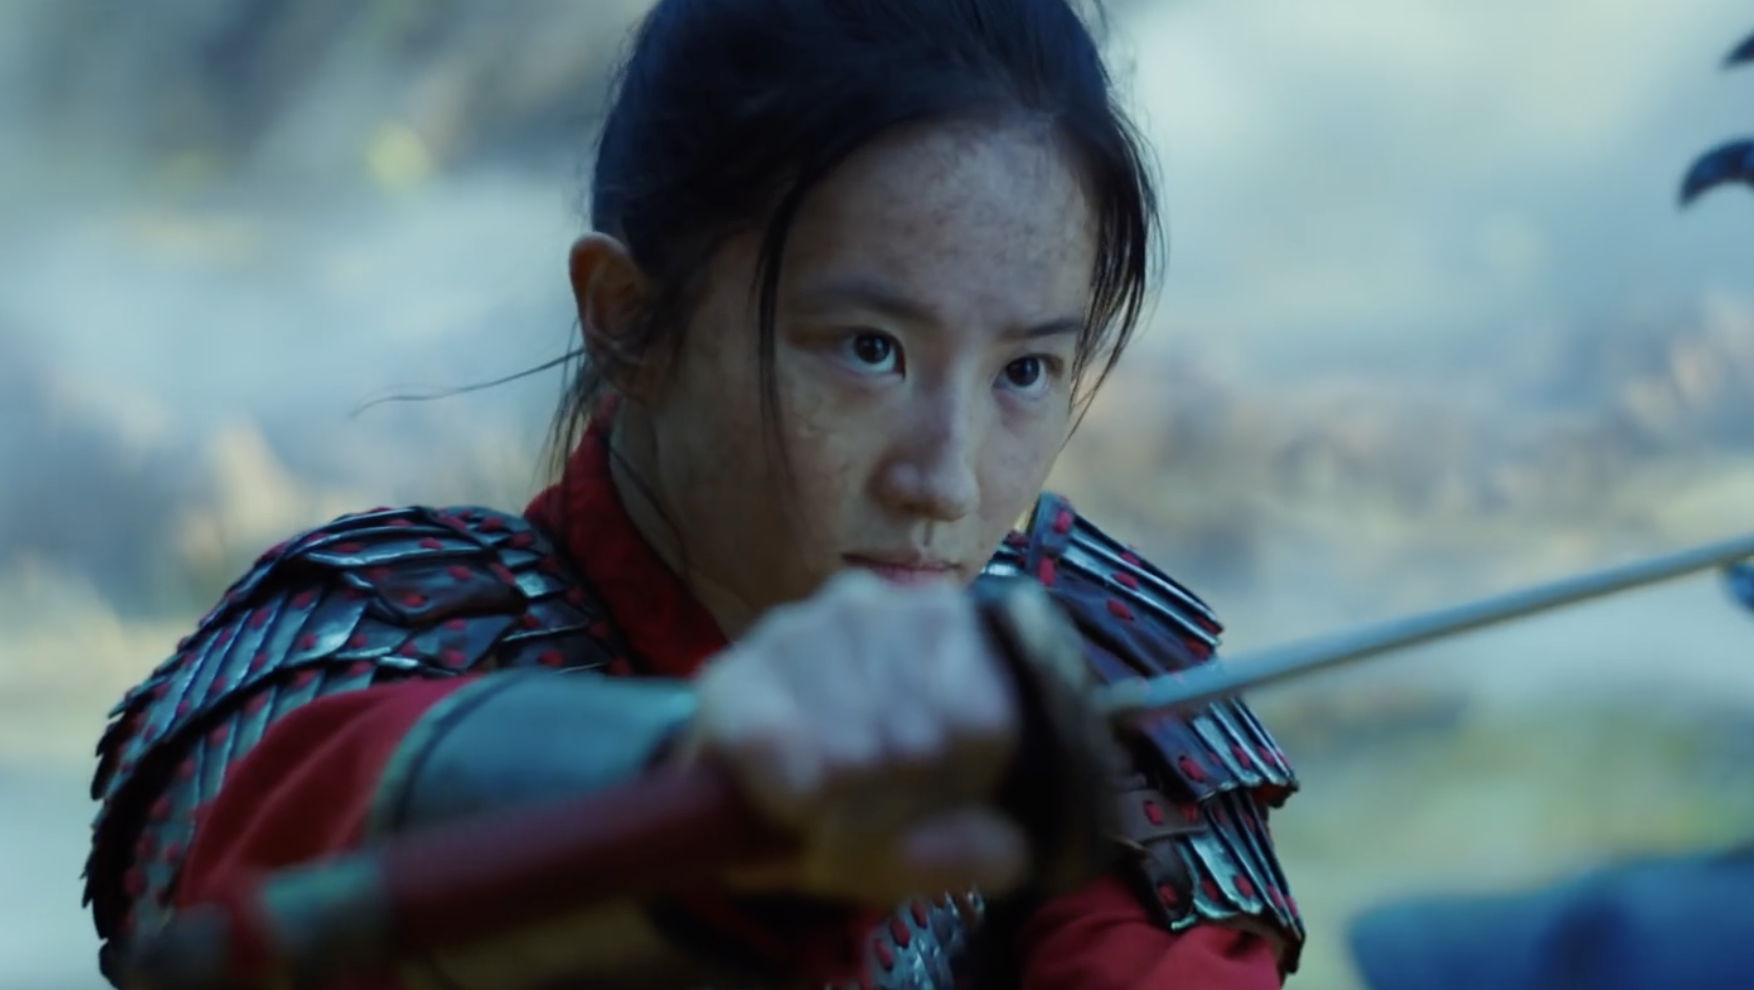 Mulan Early Reactions Hint At Film Being Disney's Best Live-Action Remake To Date